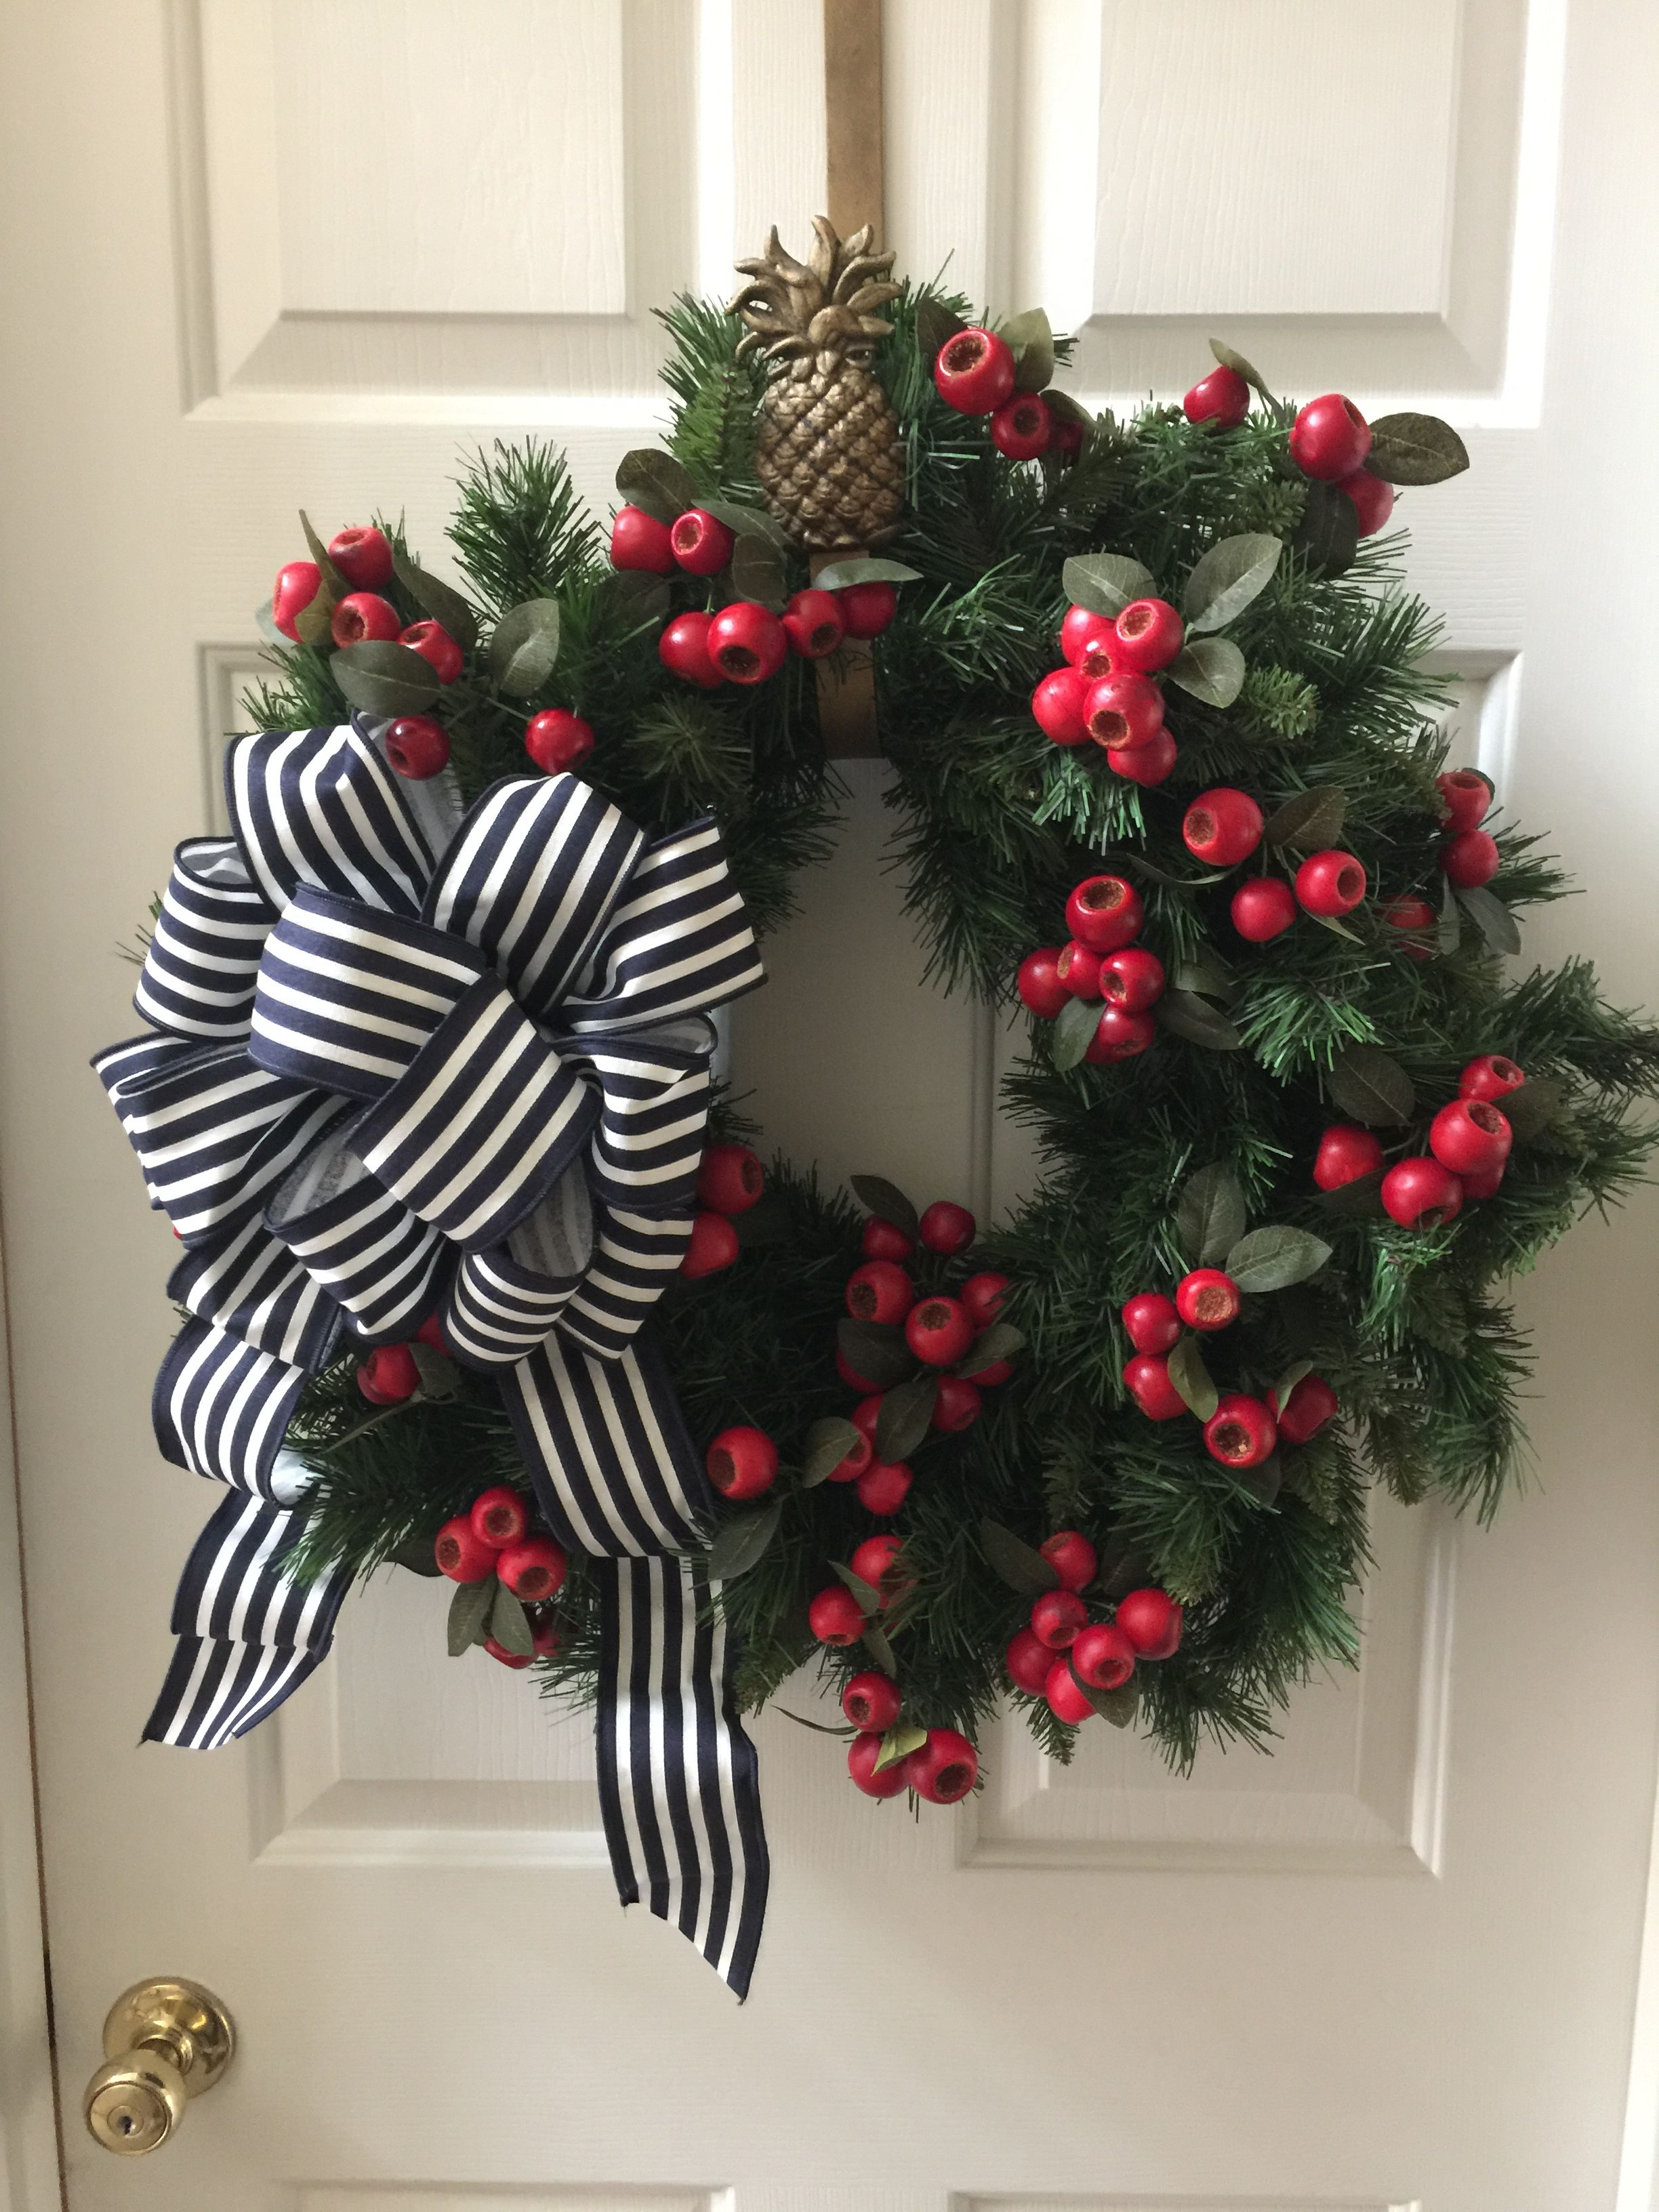 Christmas Wreath With Black And White Stripe Striped Ribbon Bow And Red Berries White Christmas Wreath Christmas Floral Decor Christmas Floral